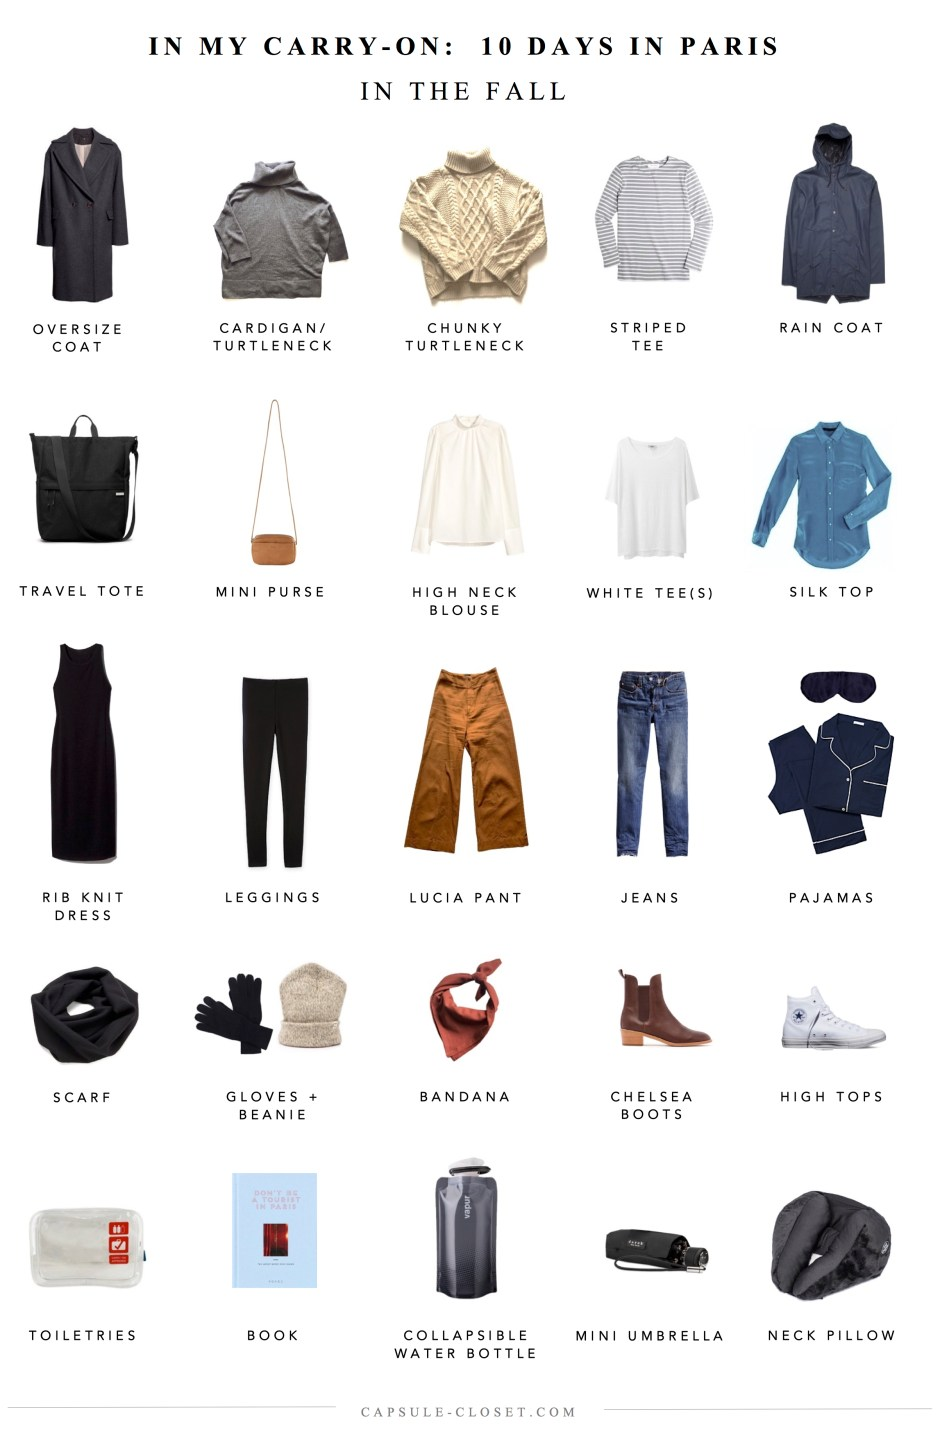 Packing list: Paris in the fall